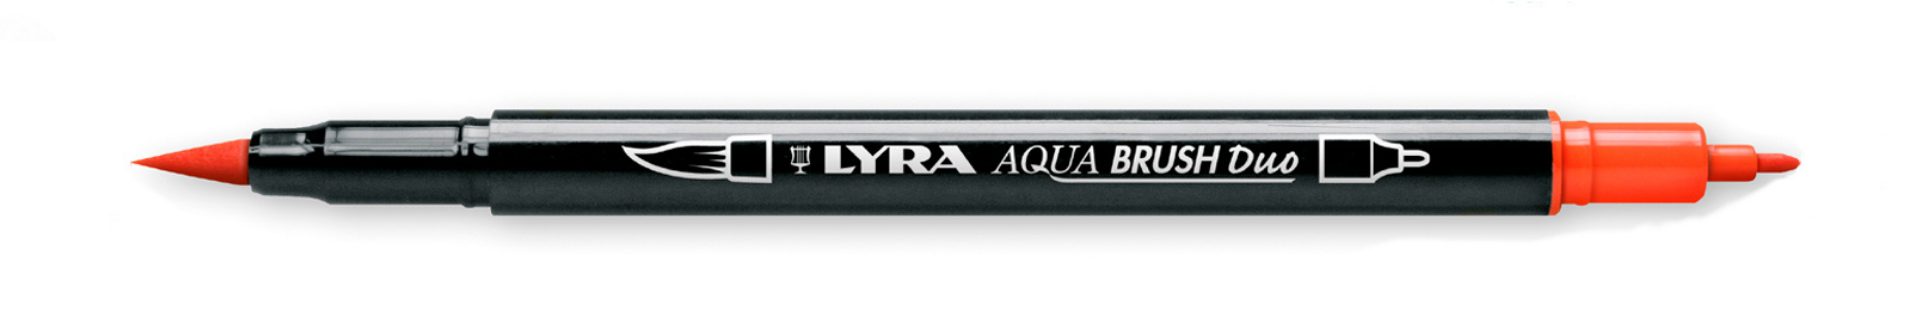 Lyra Aqua Brush Duo